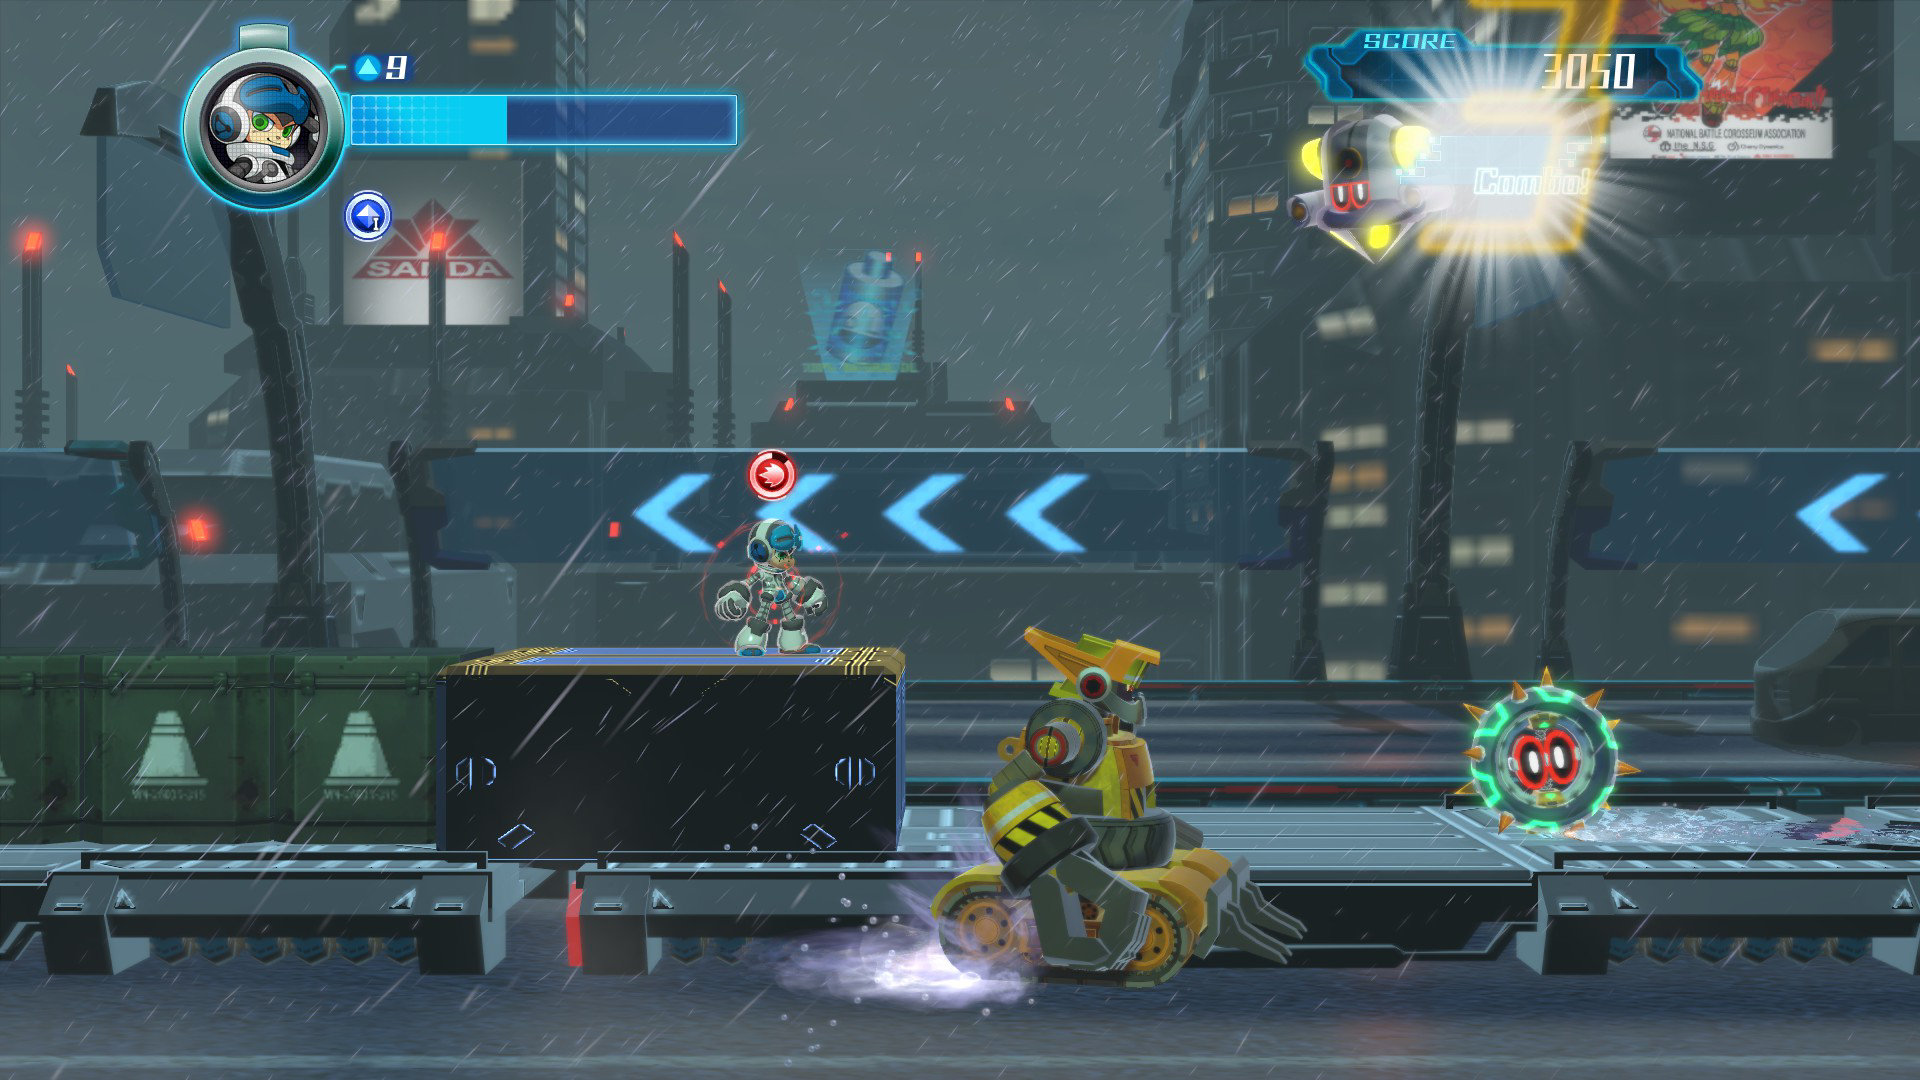 mighty-no-9-screenshot-05-ps4-ps3-psv-us